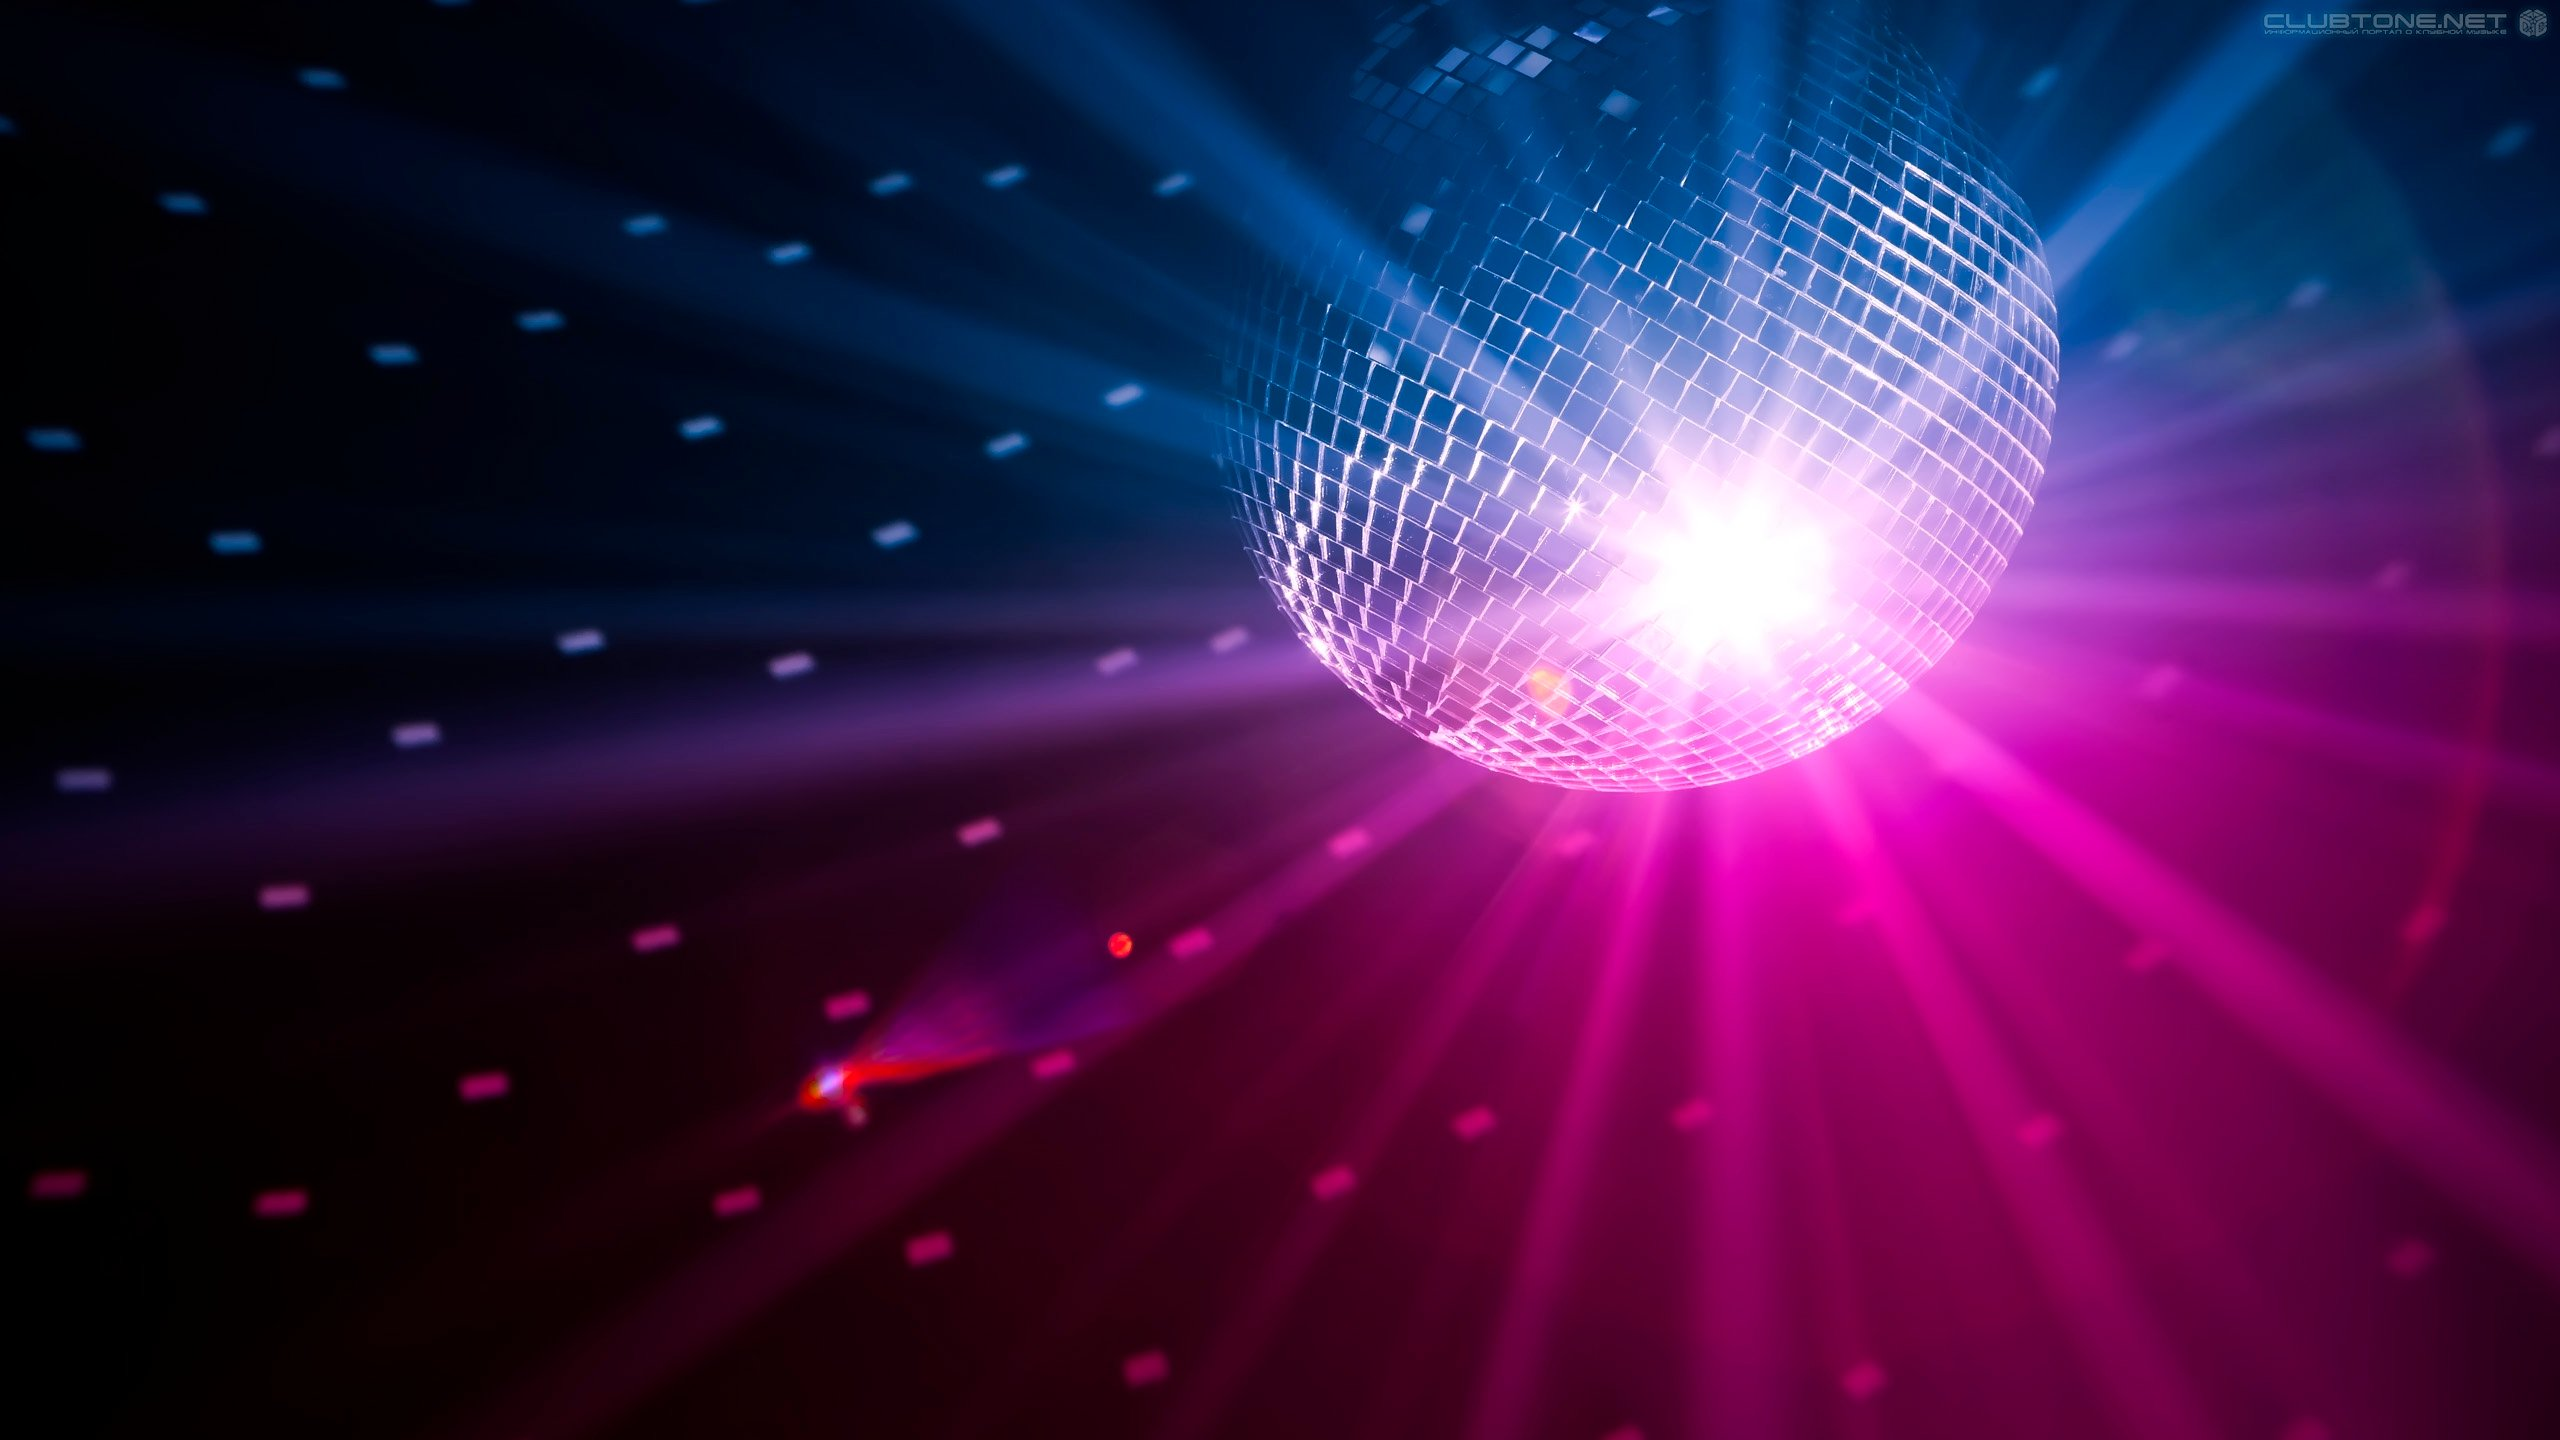 Disco Ball Wallpaper - WallpaperSafari - 386.9KB